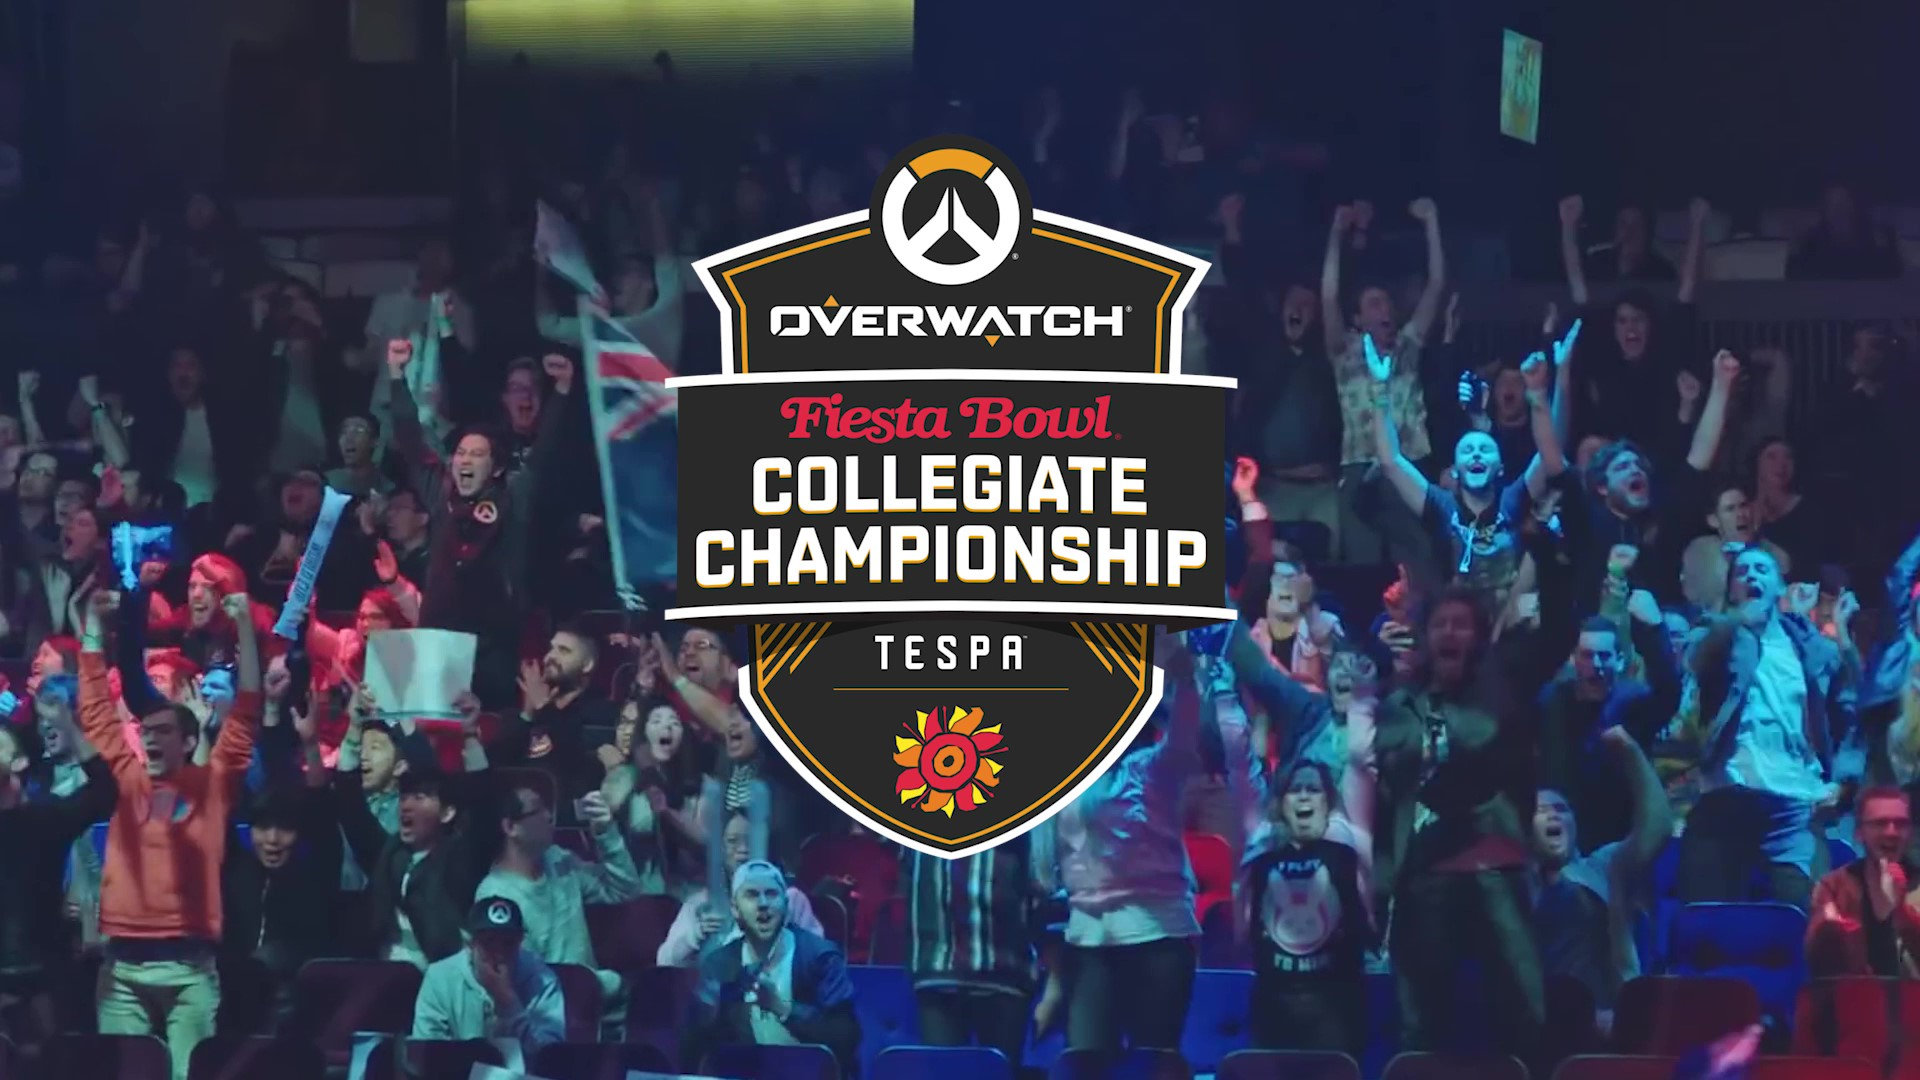 8210bdee9dc Fiesta Bowl Overwatch Collegiate National Championship coming to Tempe on  Feb. 17